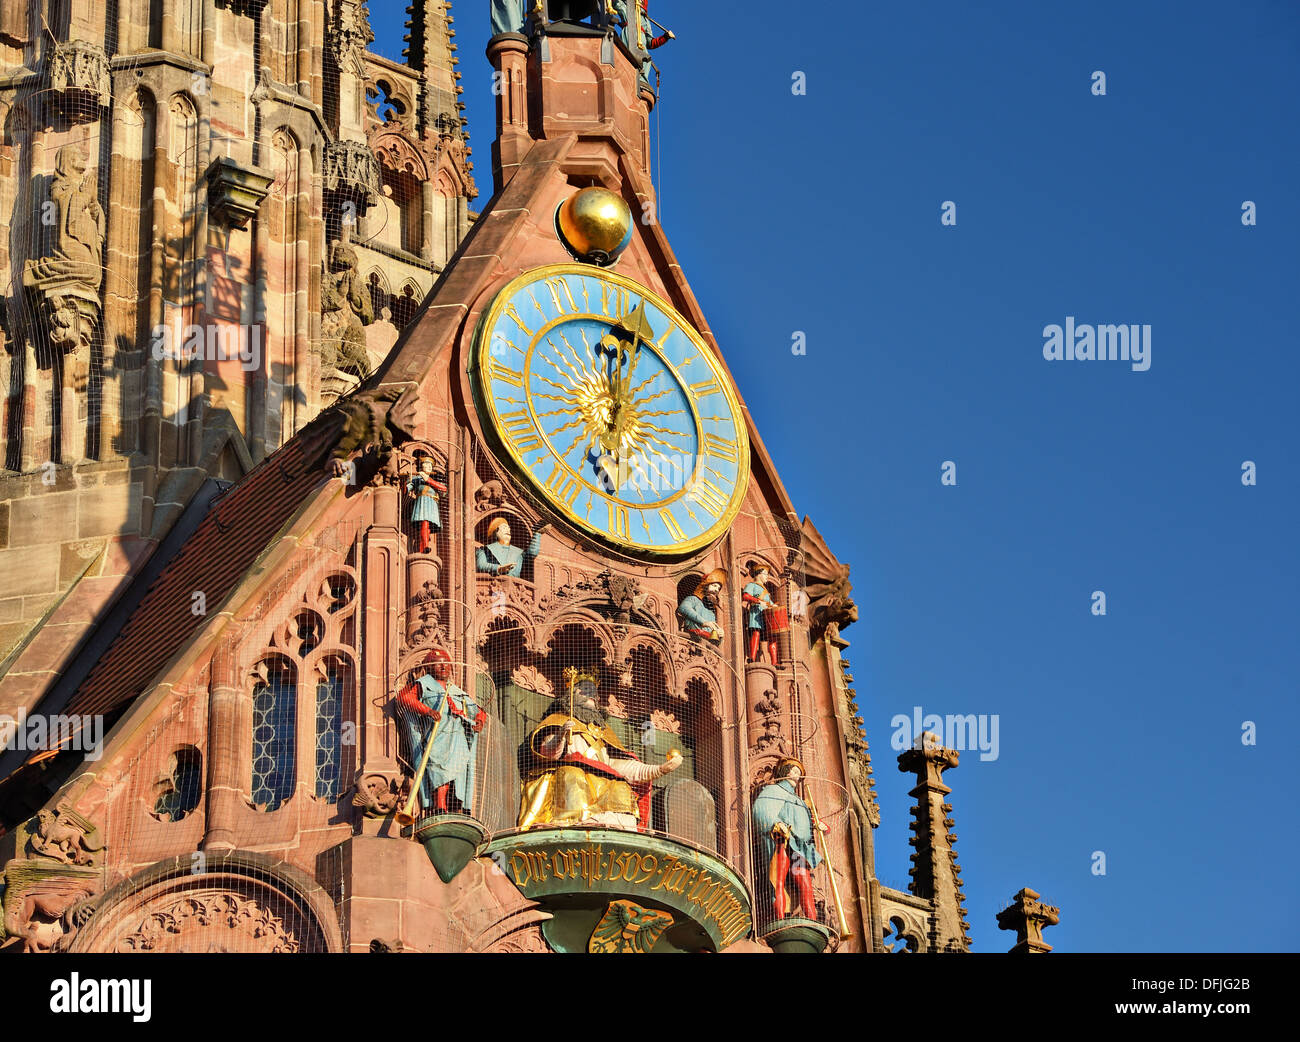 La Frauenkirche à Nuremberg, Allemagne Photo Stock